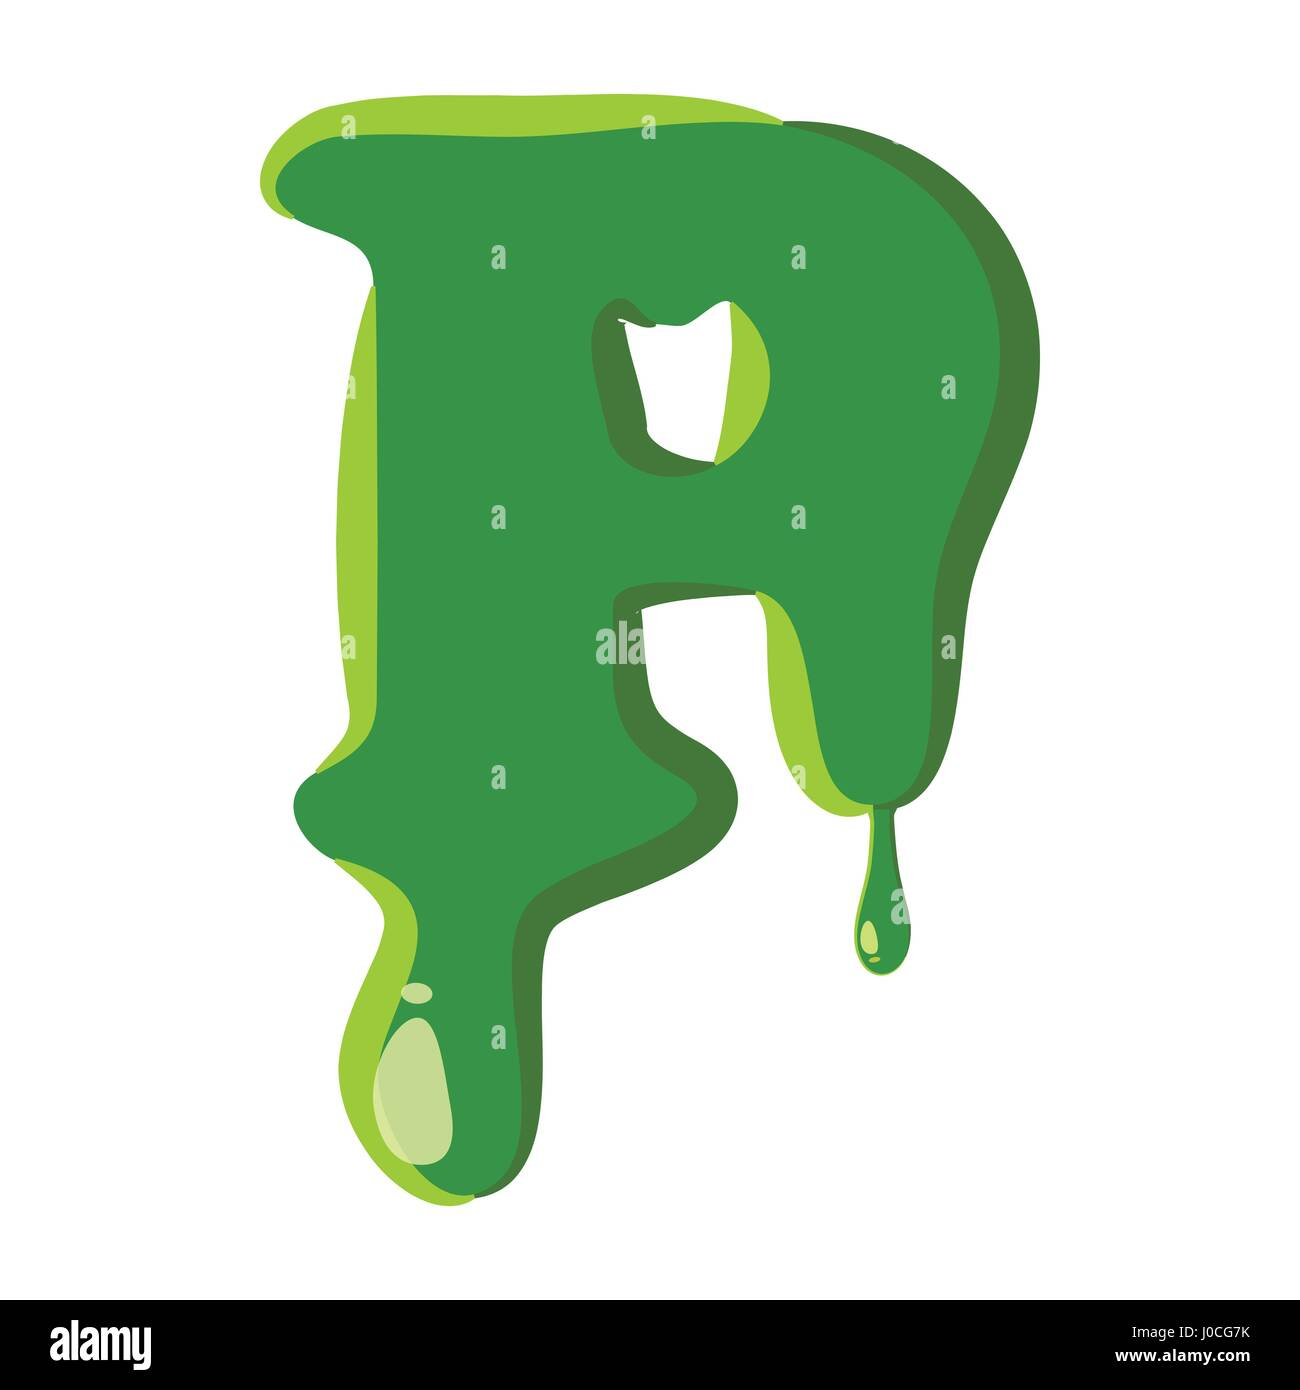 Letter P Made Of Green Slime Stock Vector Art Illustration Vector